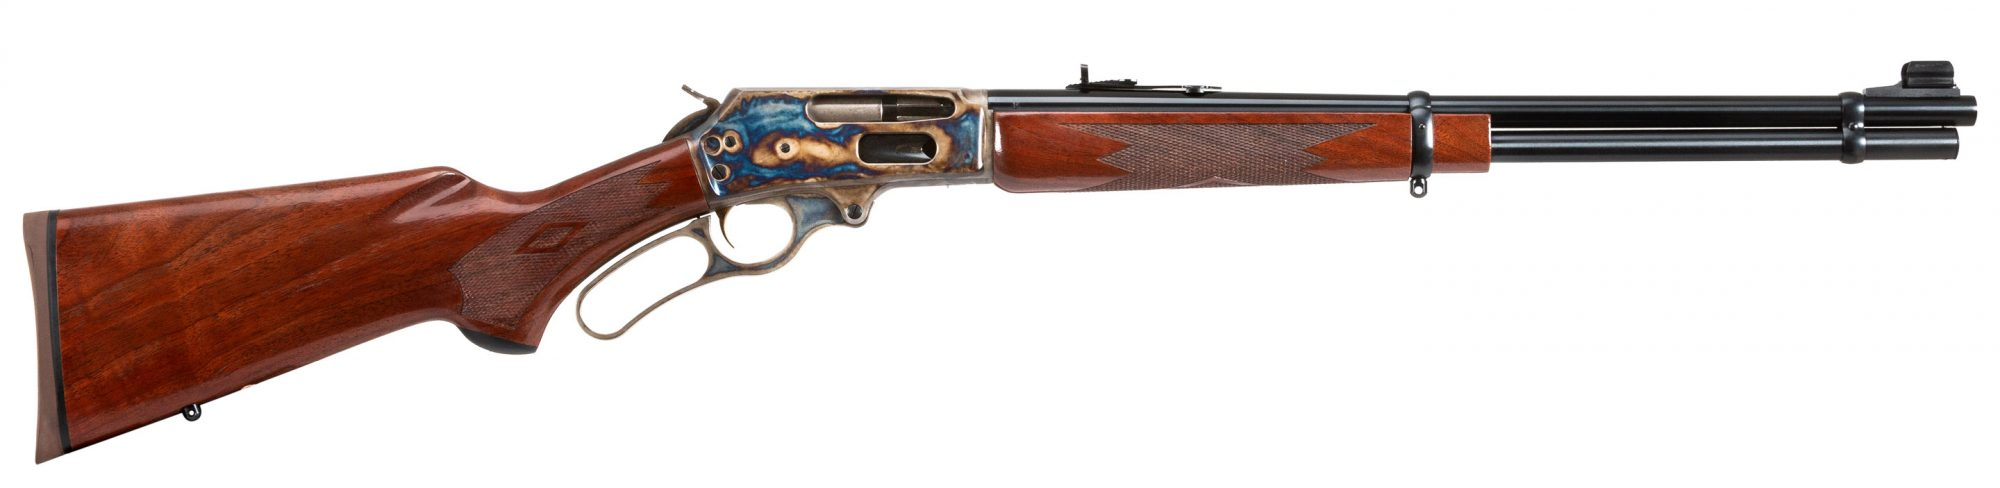 Photo of a Turnbull Finished Marlin 336C featuring bone charcoal color case hardening